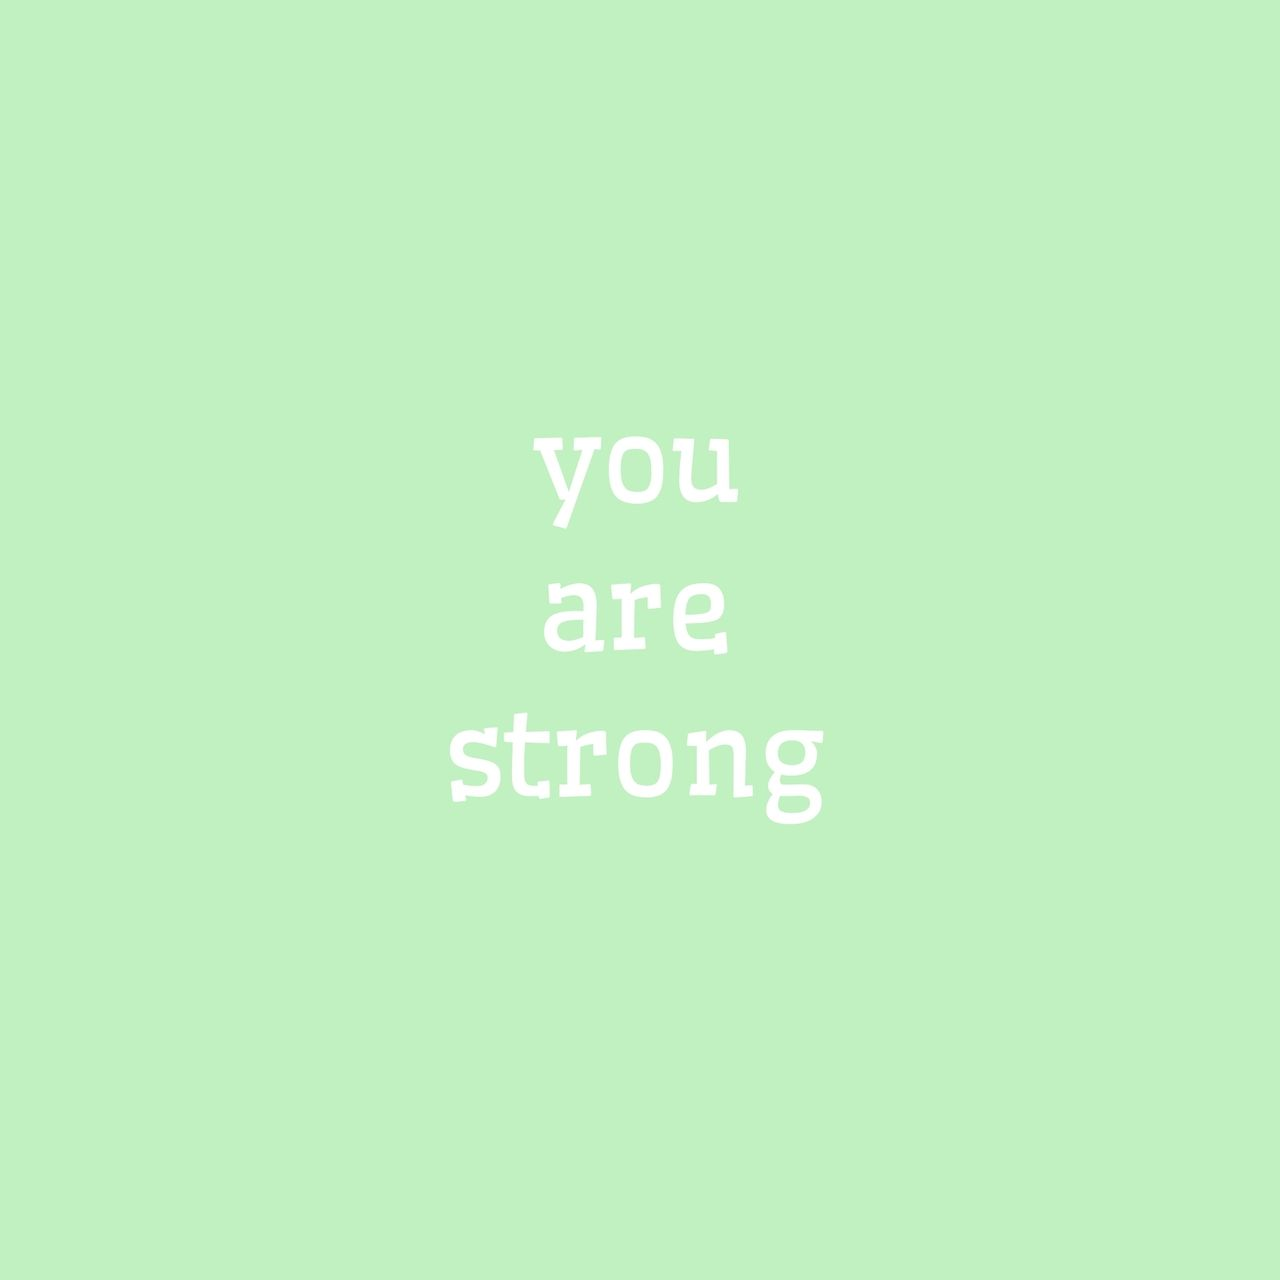 Aesthetic Quotes: Mint Green Aesthetic Tumblr Quotes Pictures To Pin On